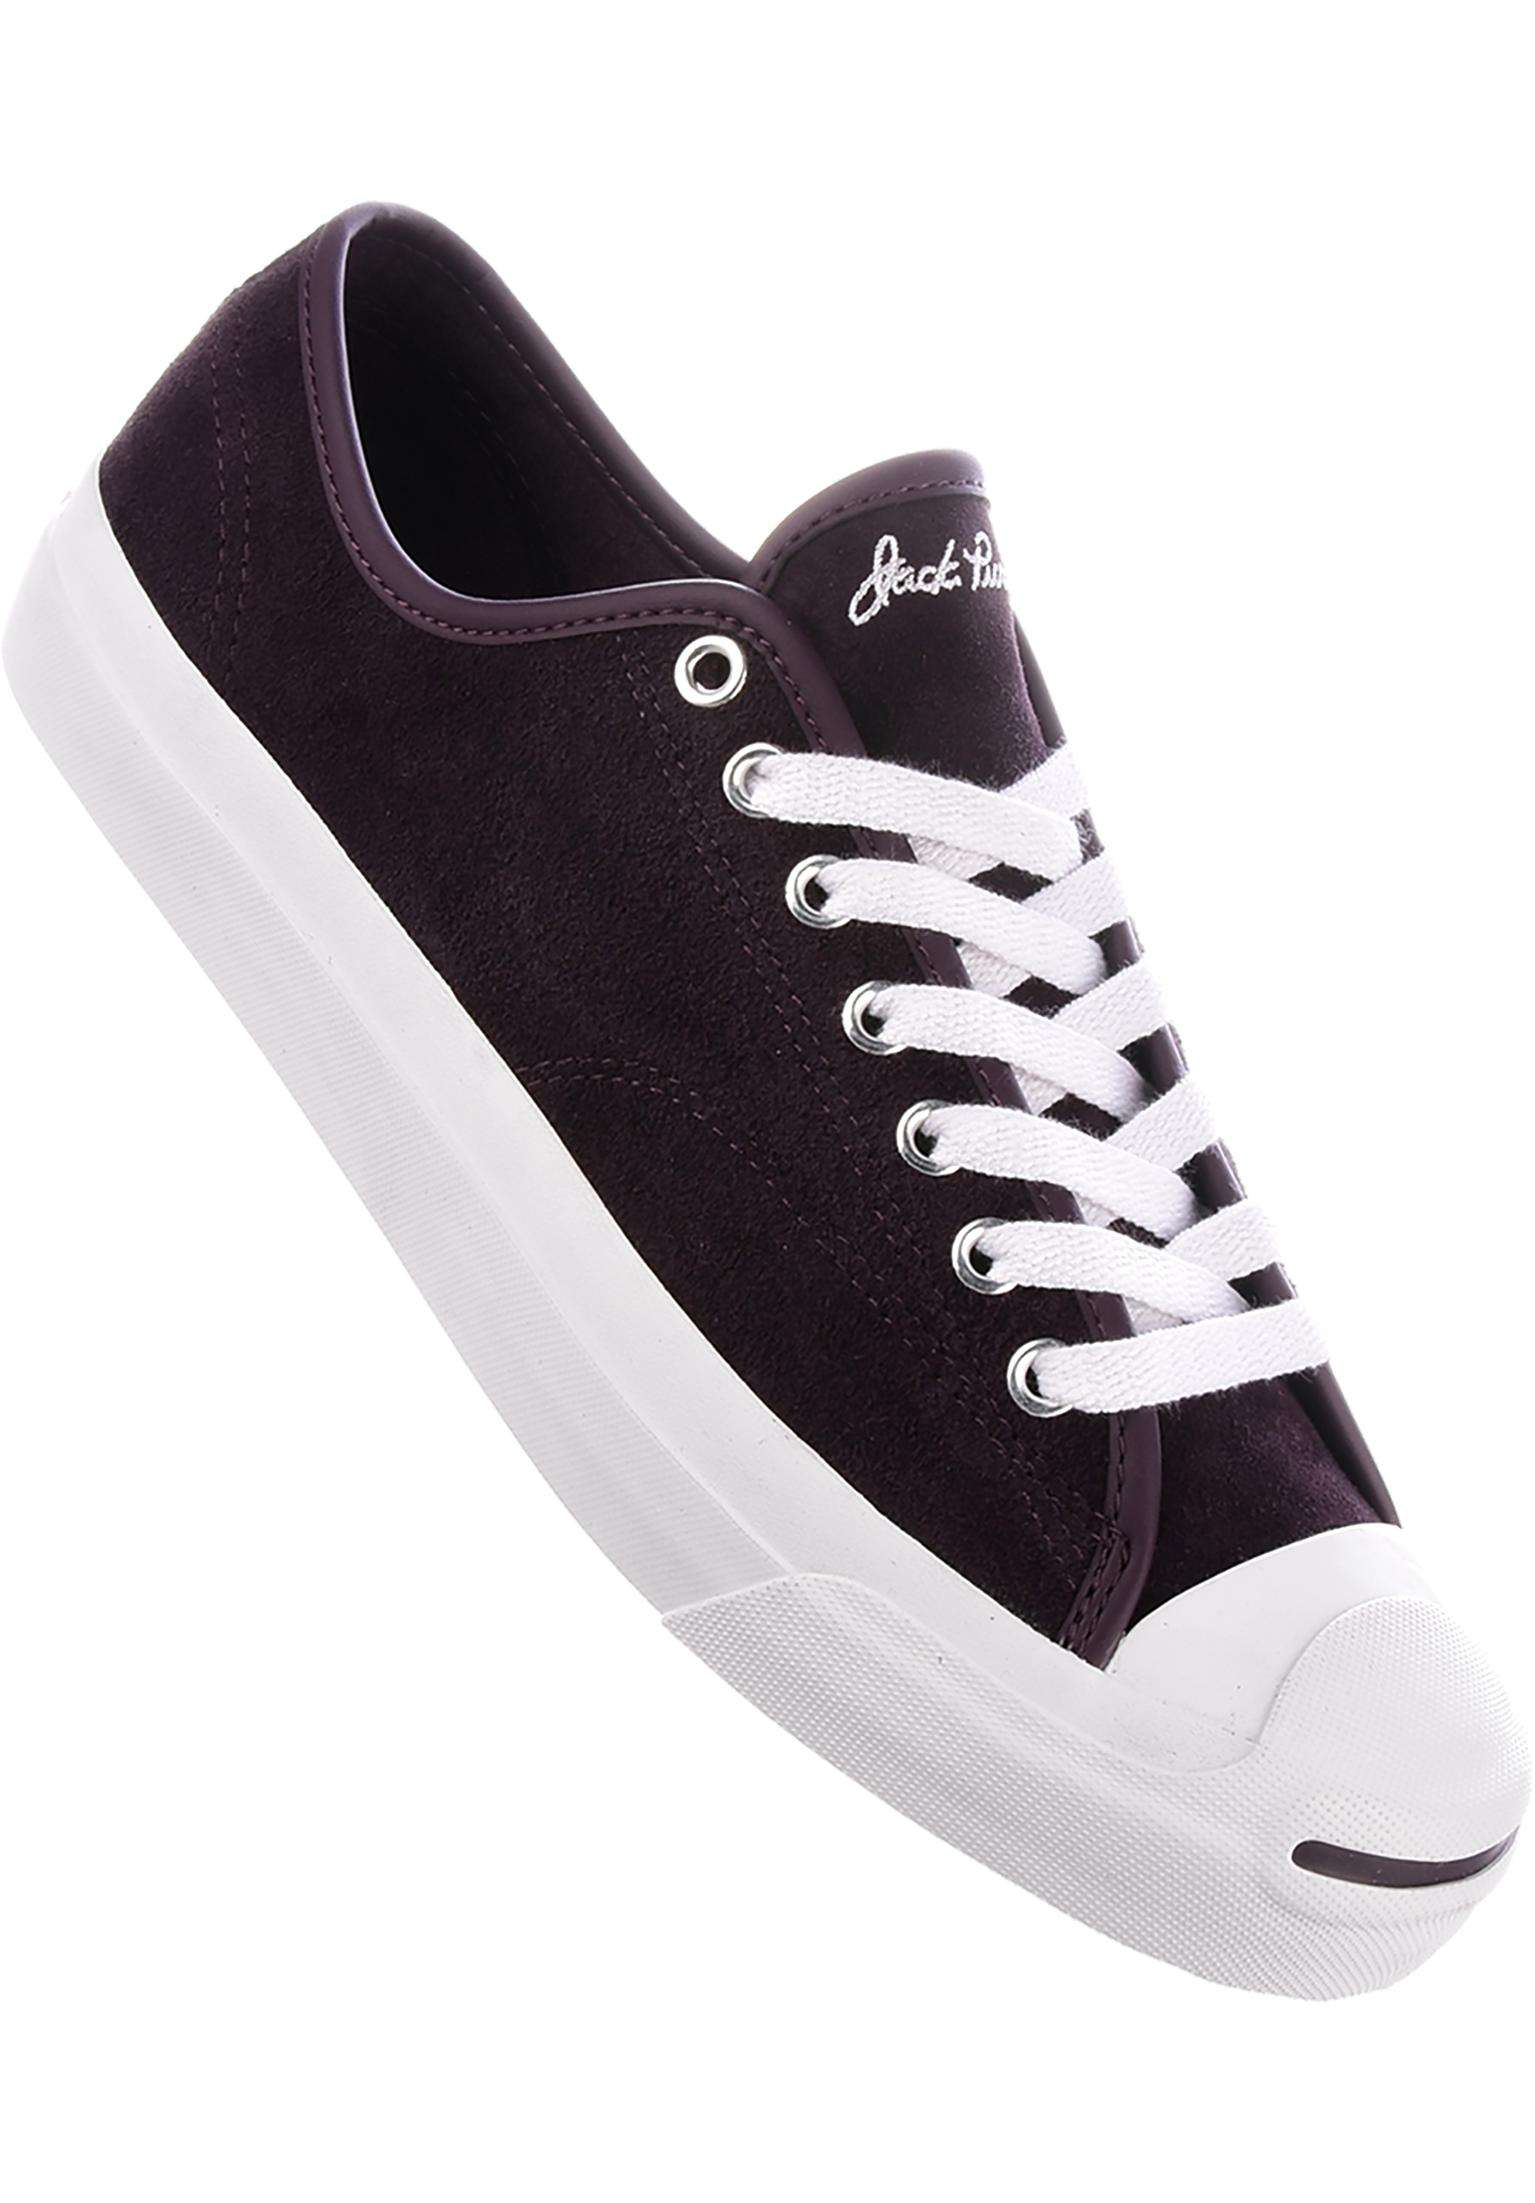 f1d688dcb0c91b Jack Purcell Pro Ox Converse CONS All Shoes in blackcherry-white for Men